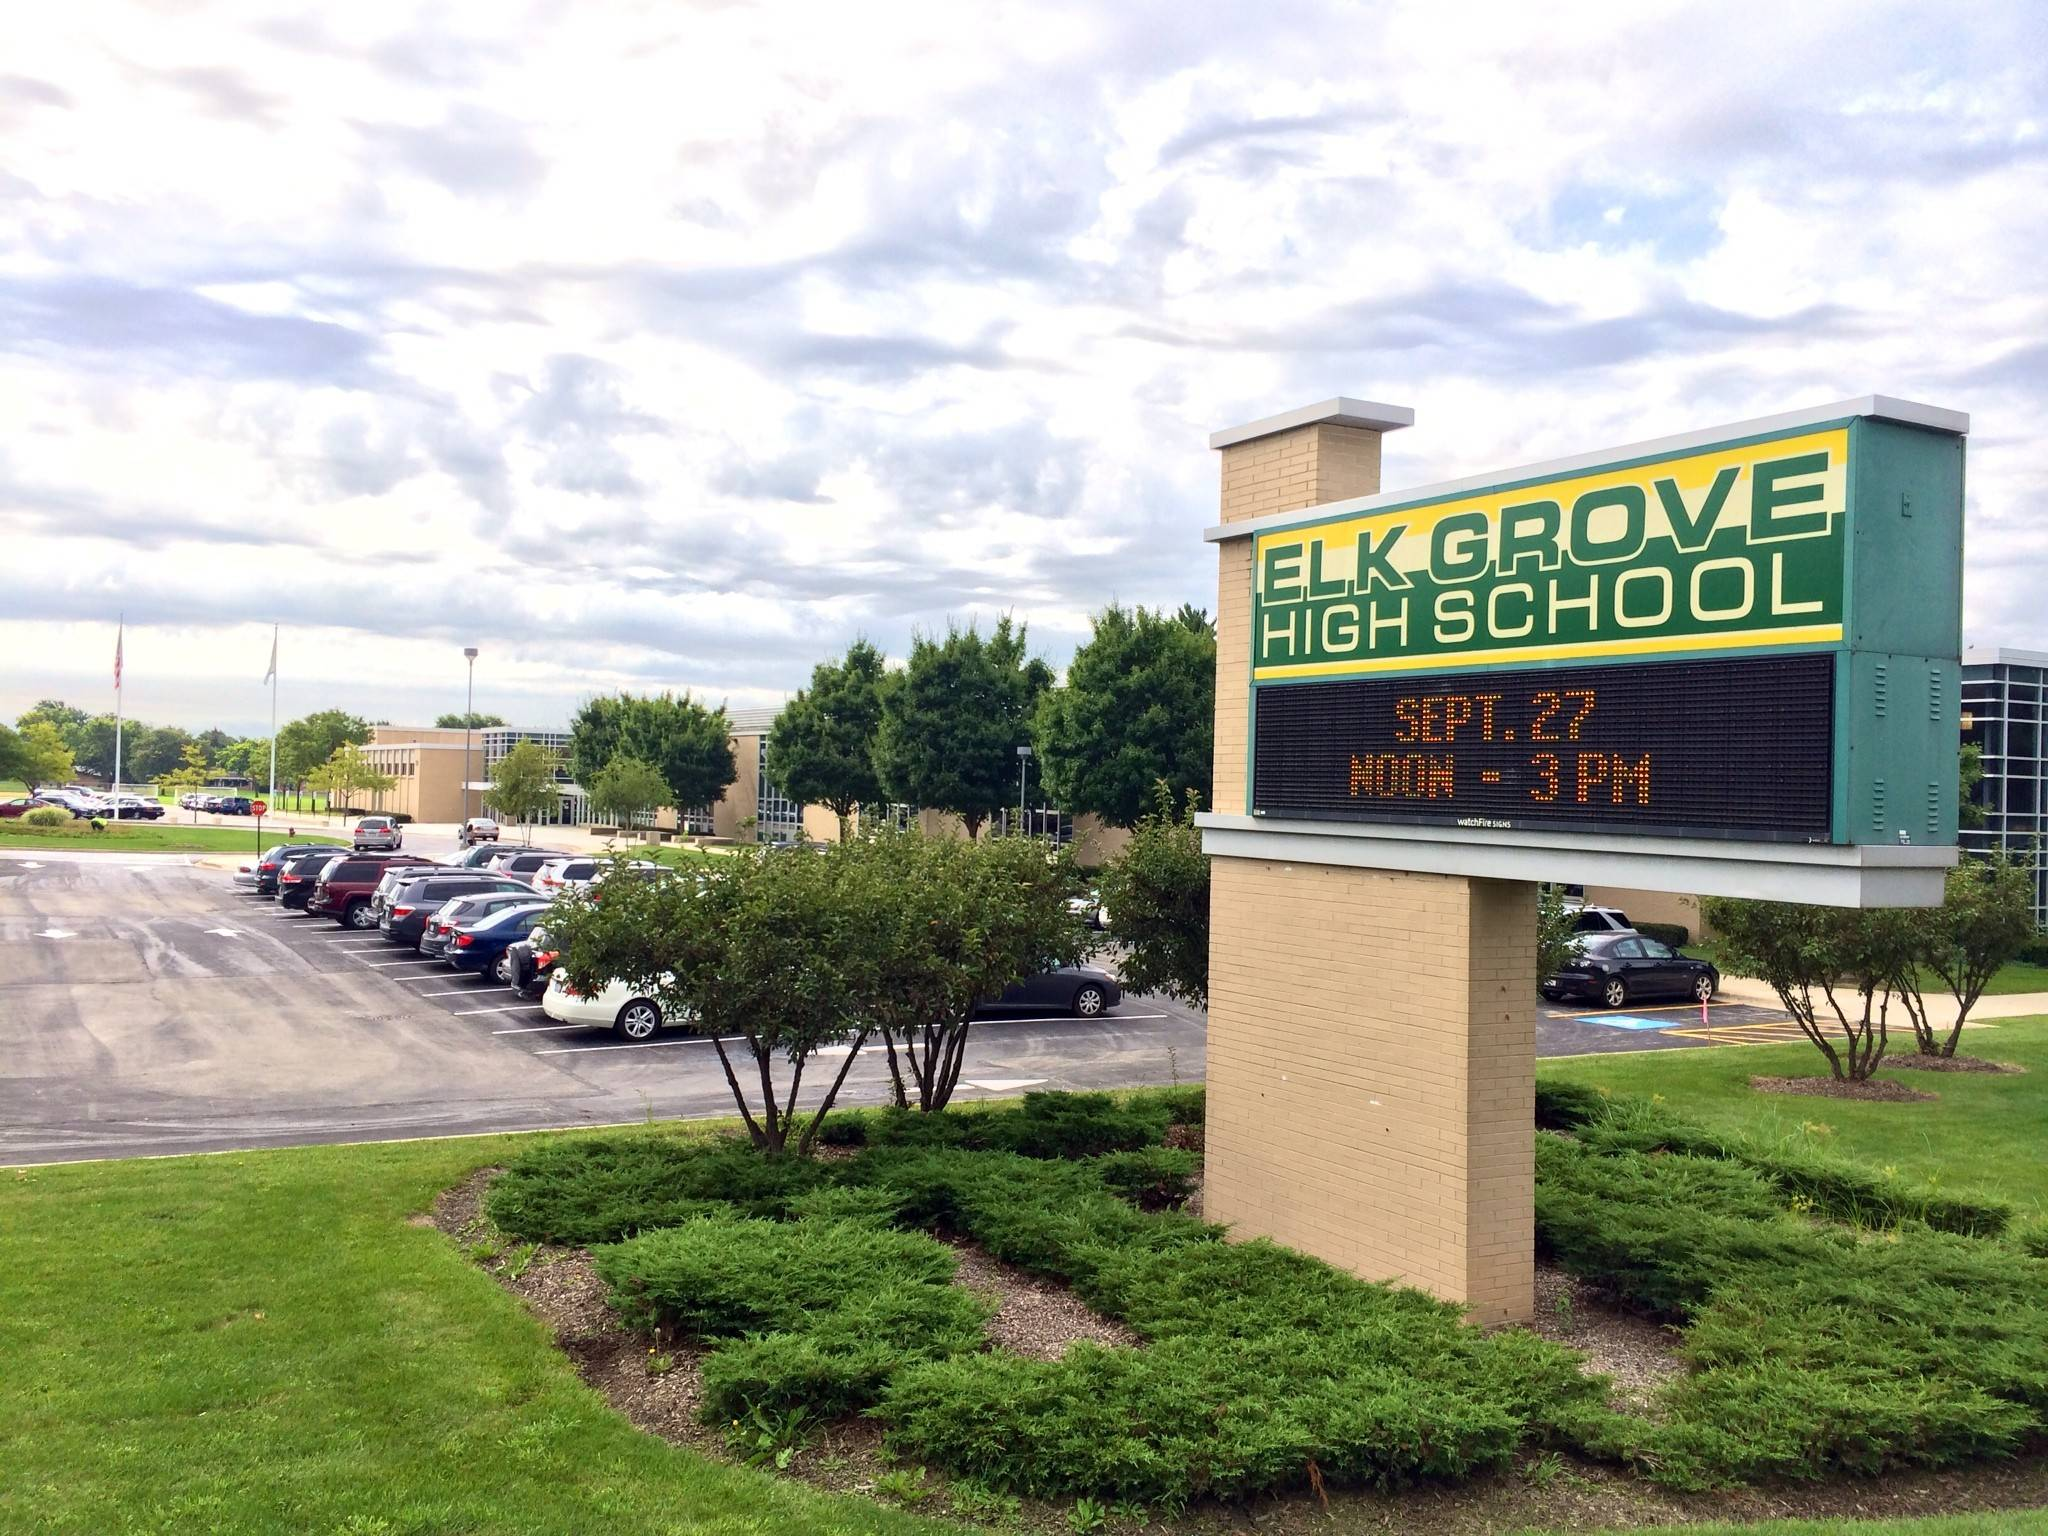 Elk Grove High School was awarded the LEED Silver level certification by the U.S. Green Building Council for the school's green operations and maintenance practices.